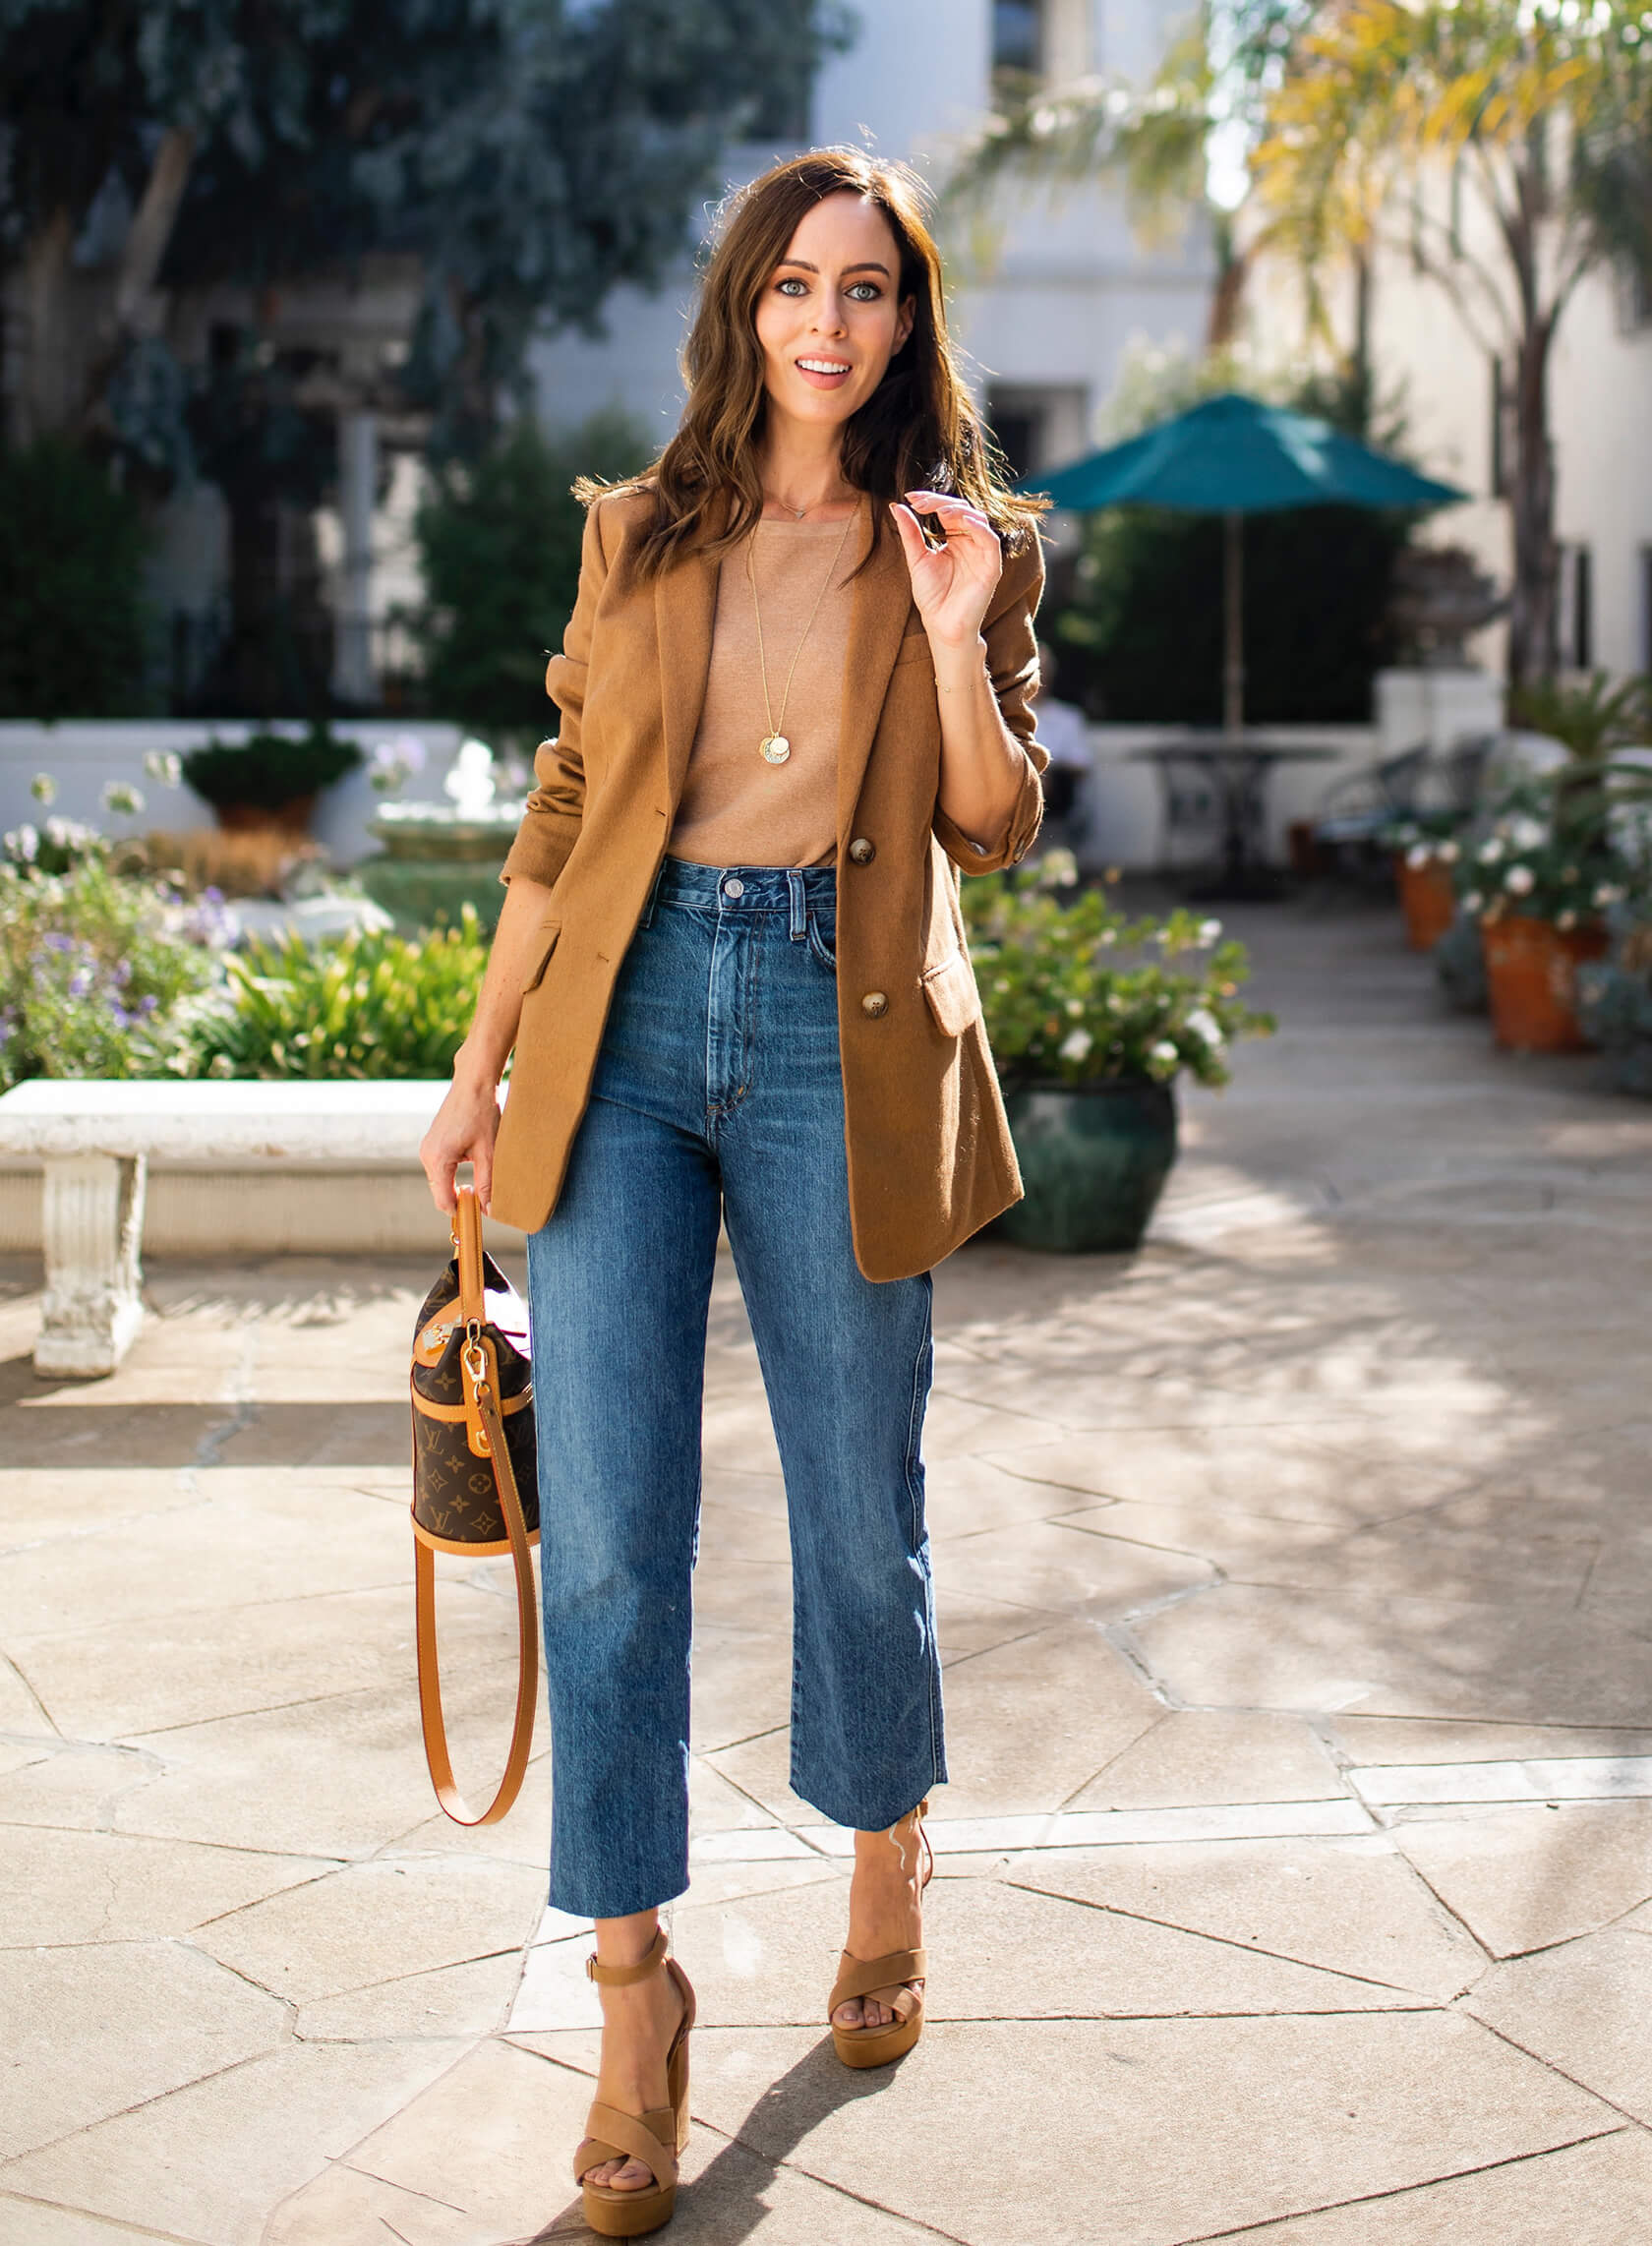 Sydne Style shows fall denim trend in agolde cropped jeans